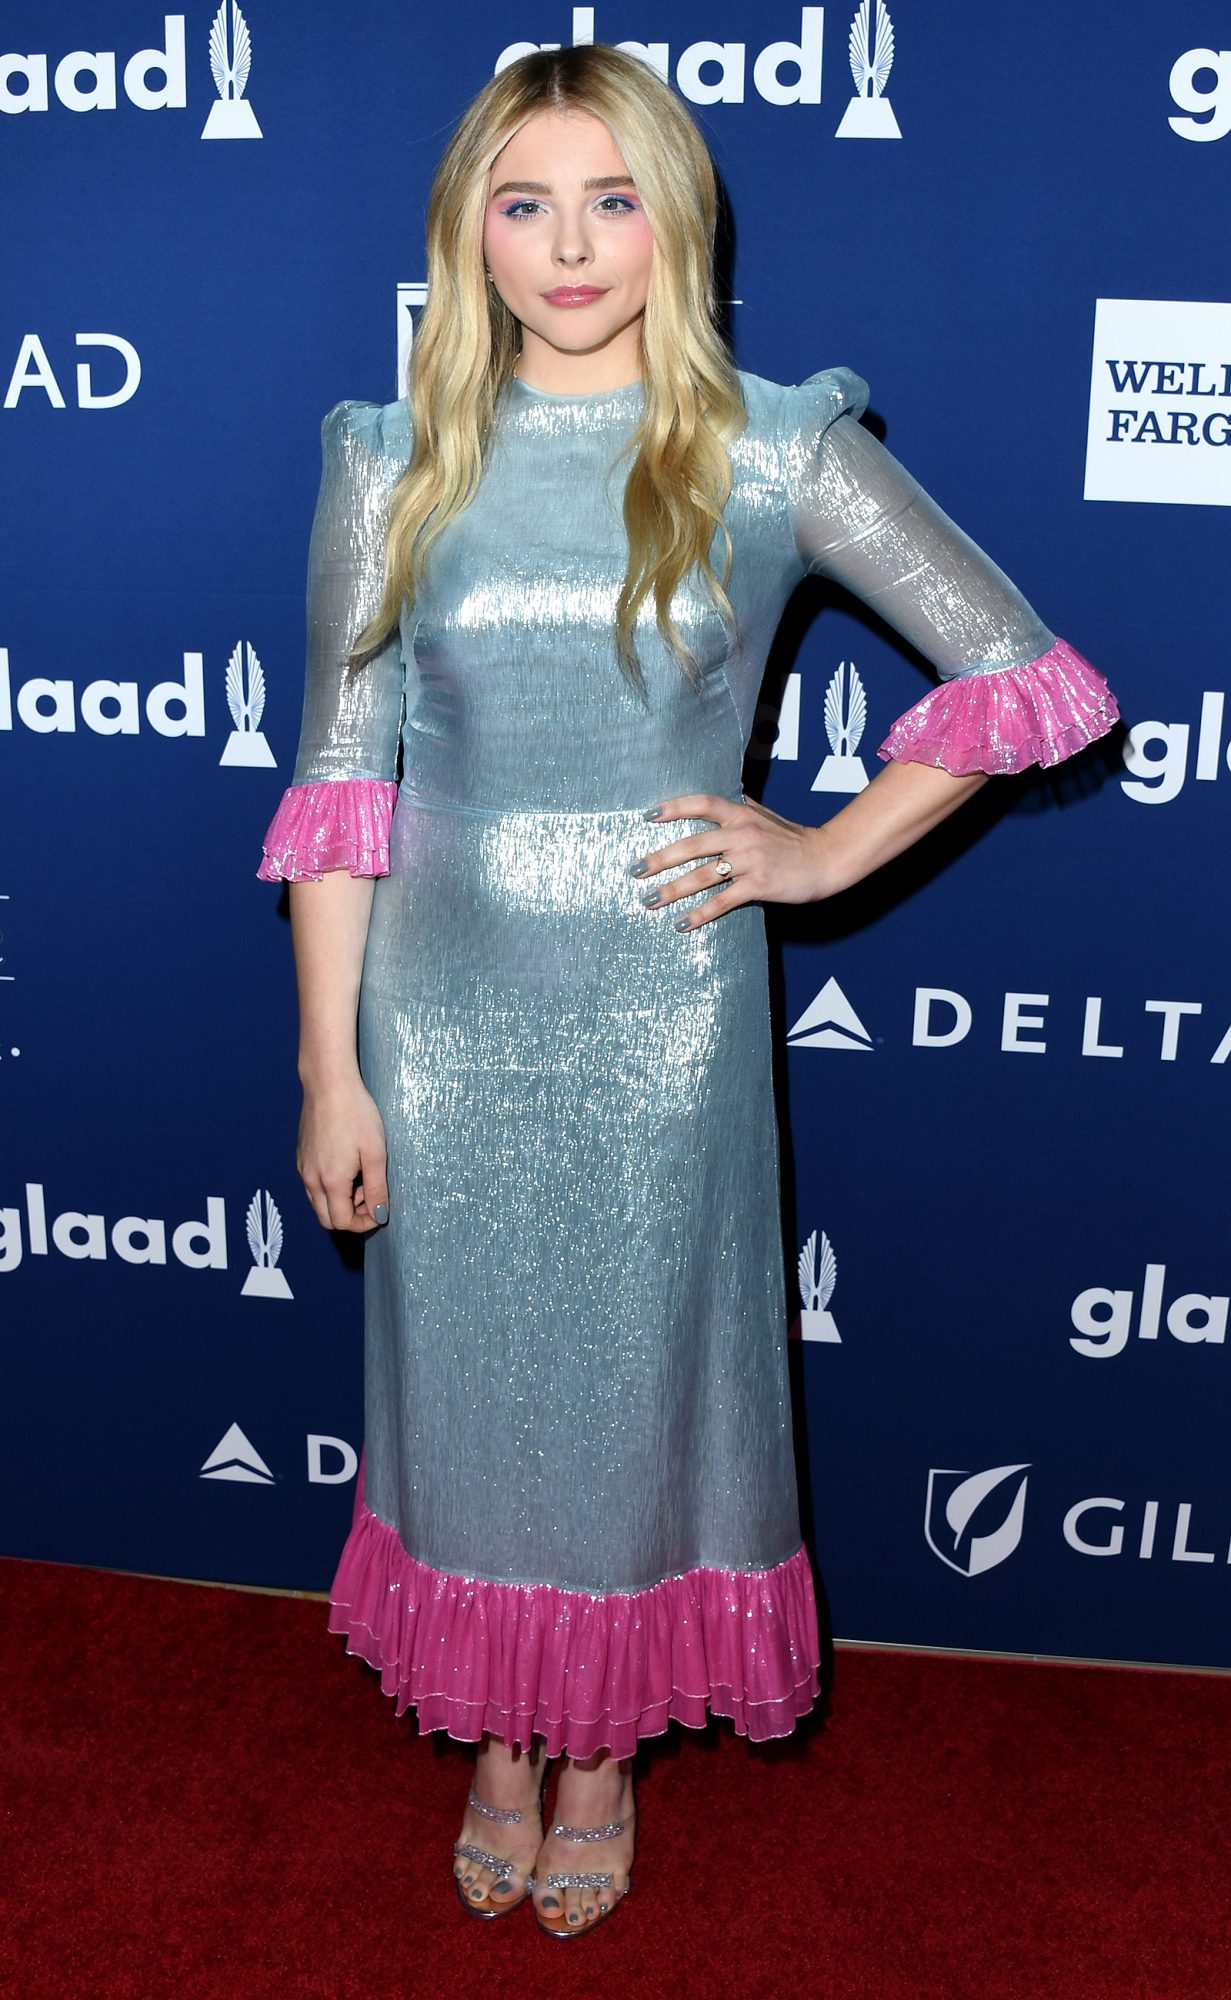 29th Annual GLAAD Media Awards - Arrivals